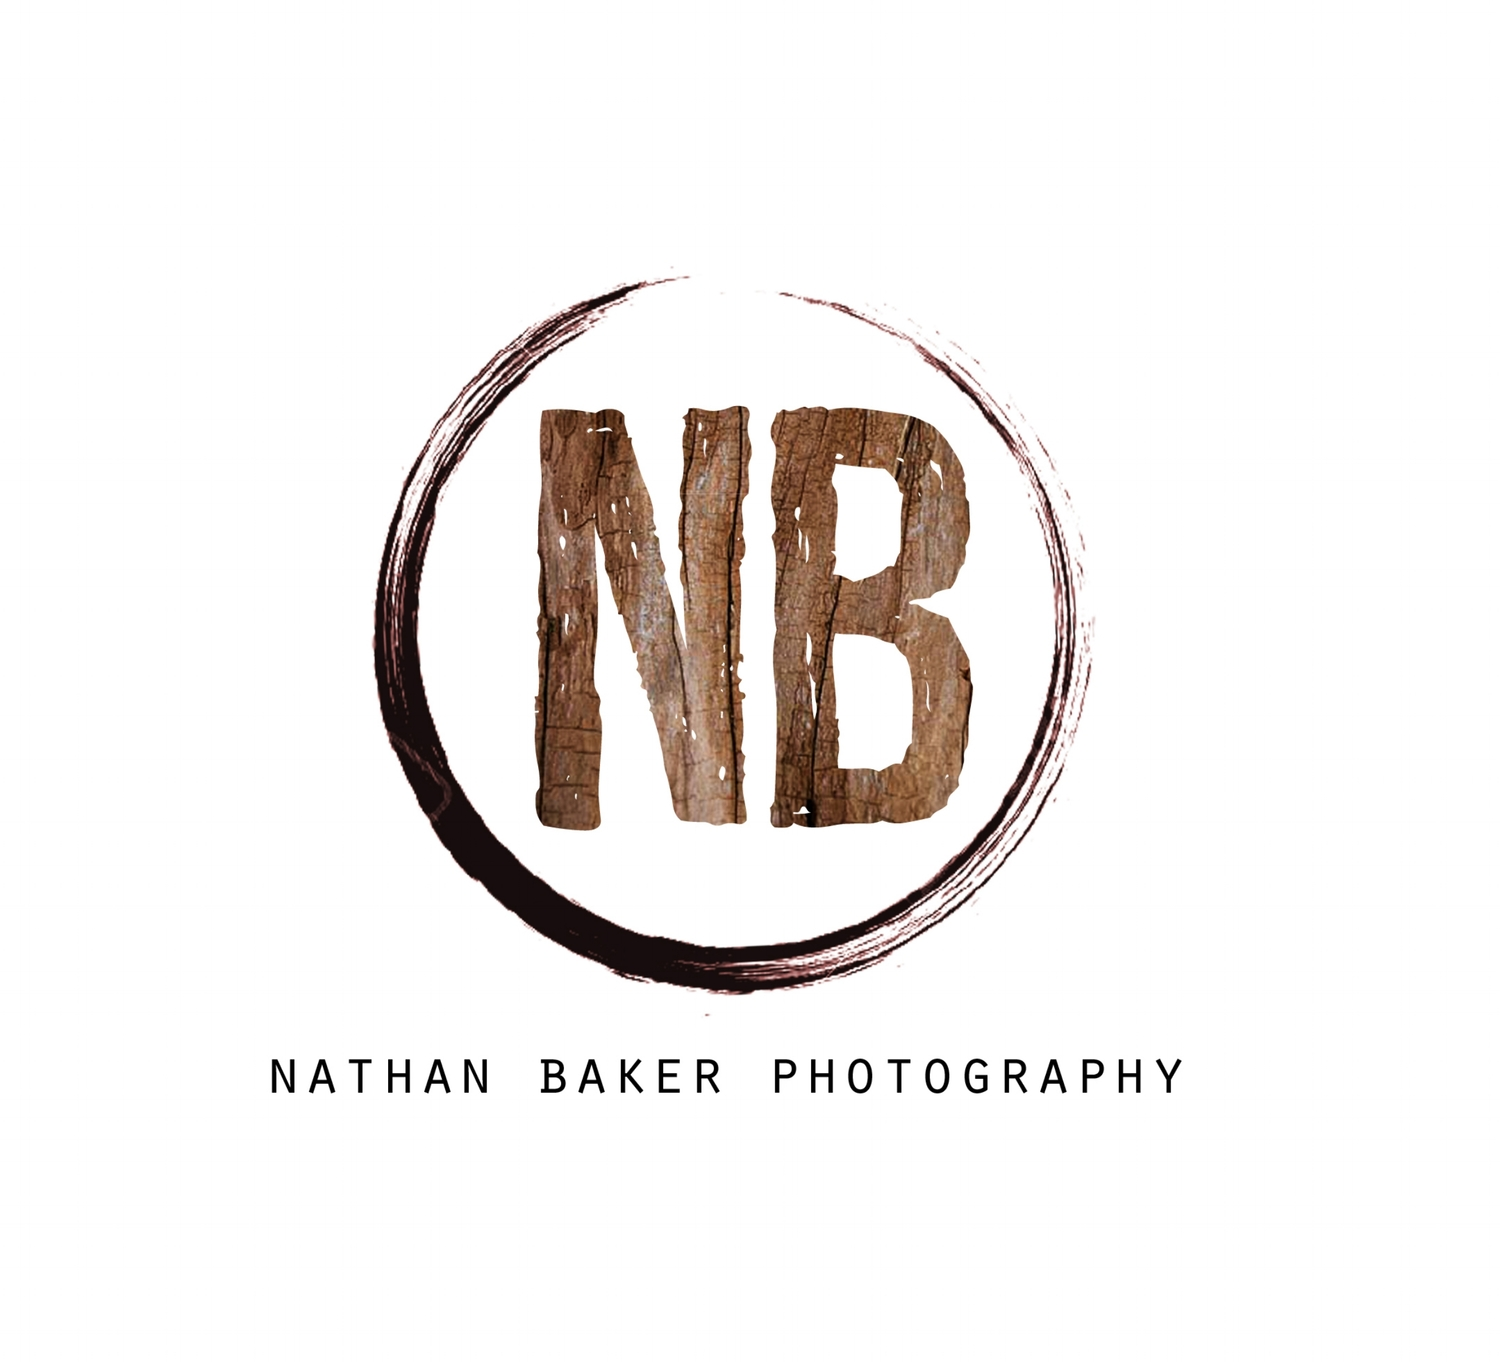 Nathan Baker Photography